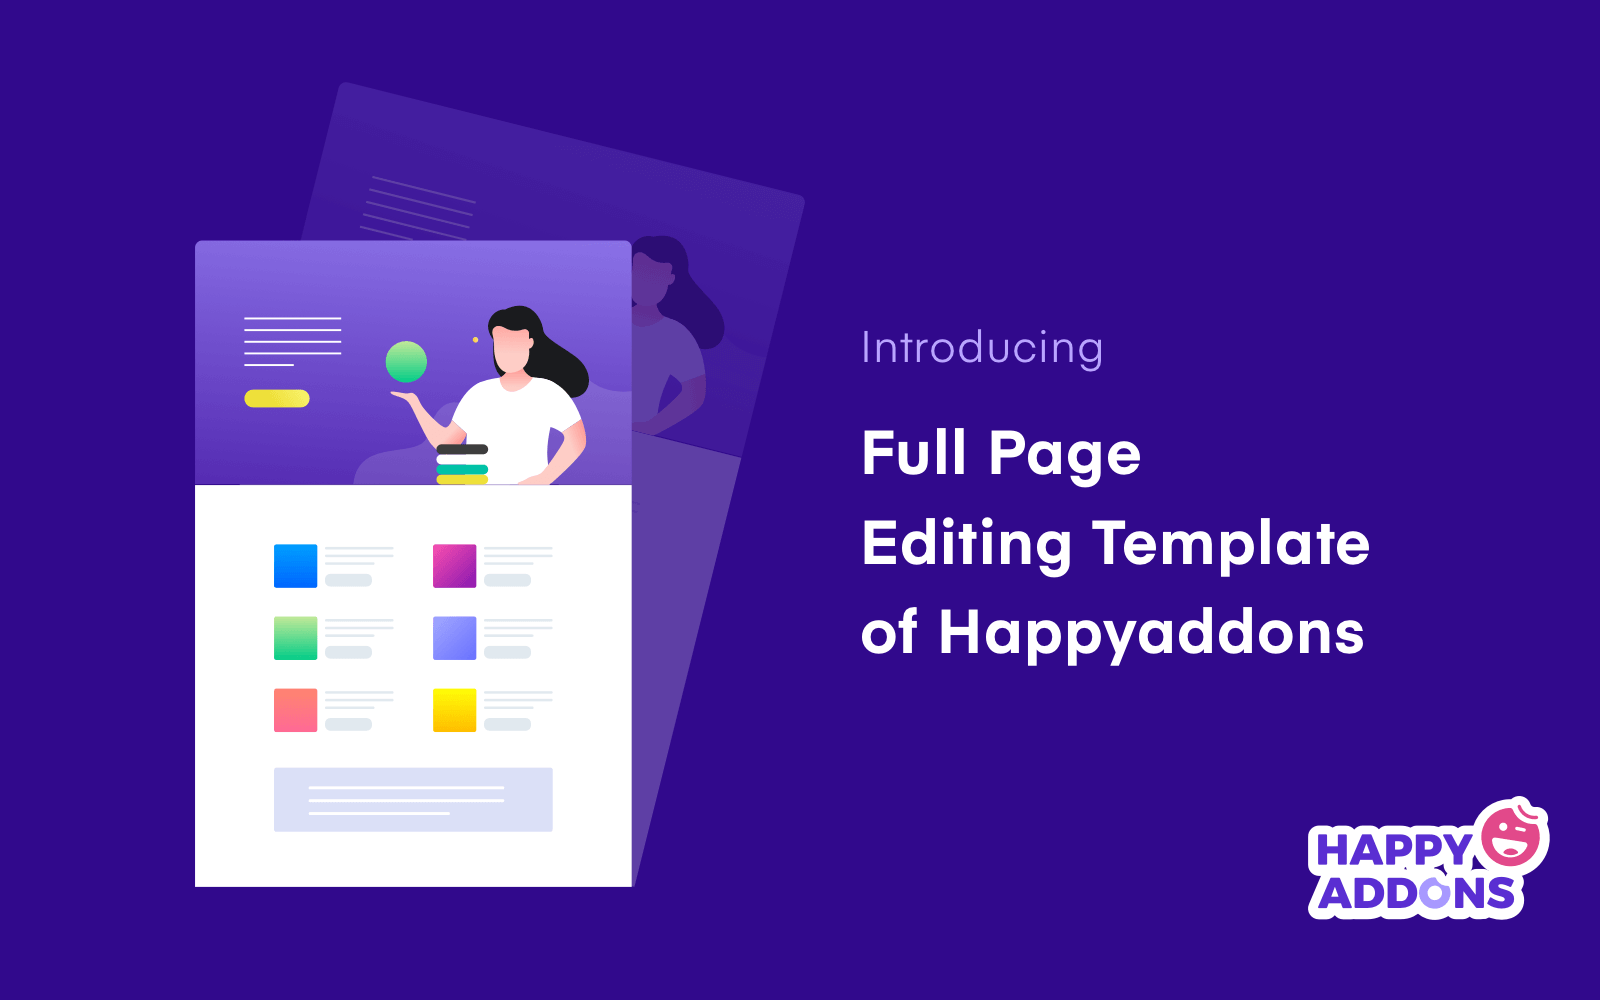 Introducing full page editing template of HappyAddons